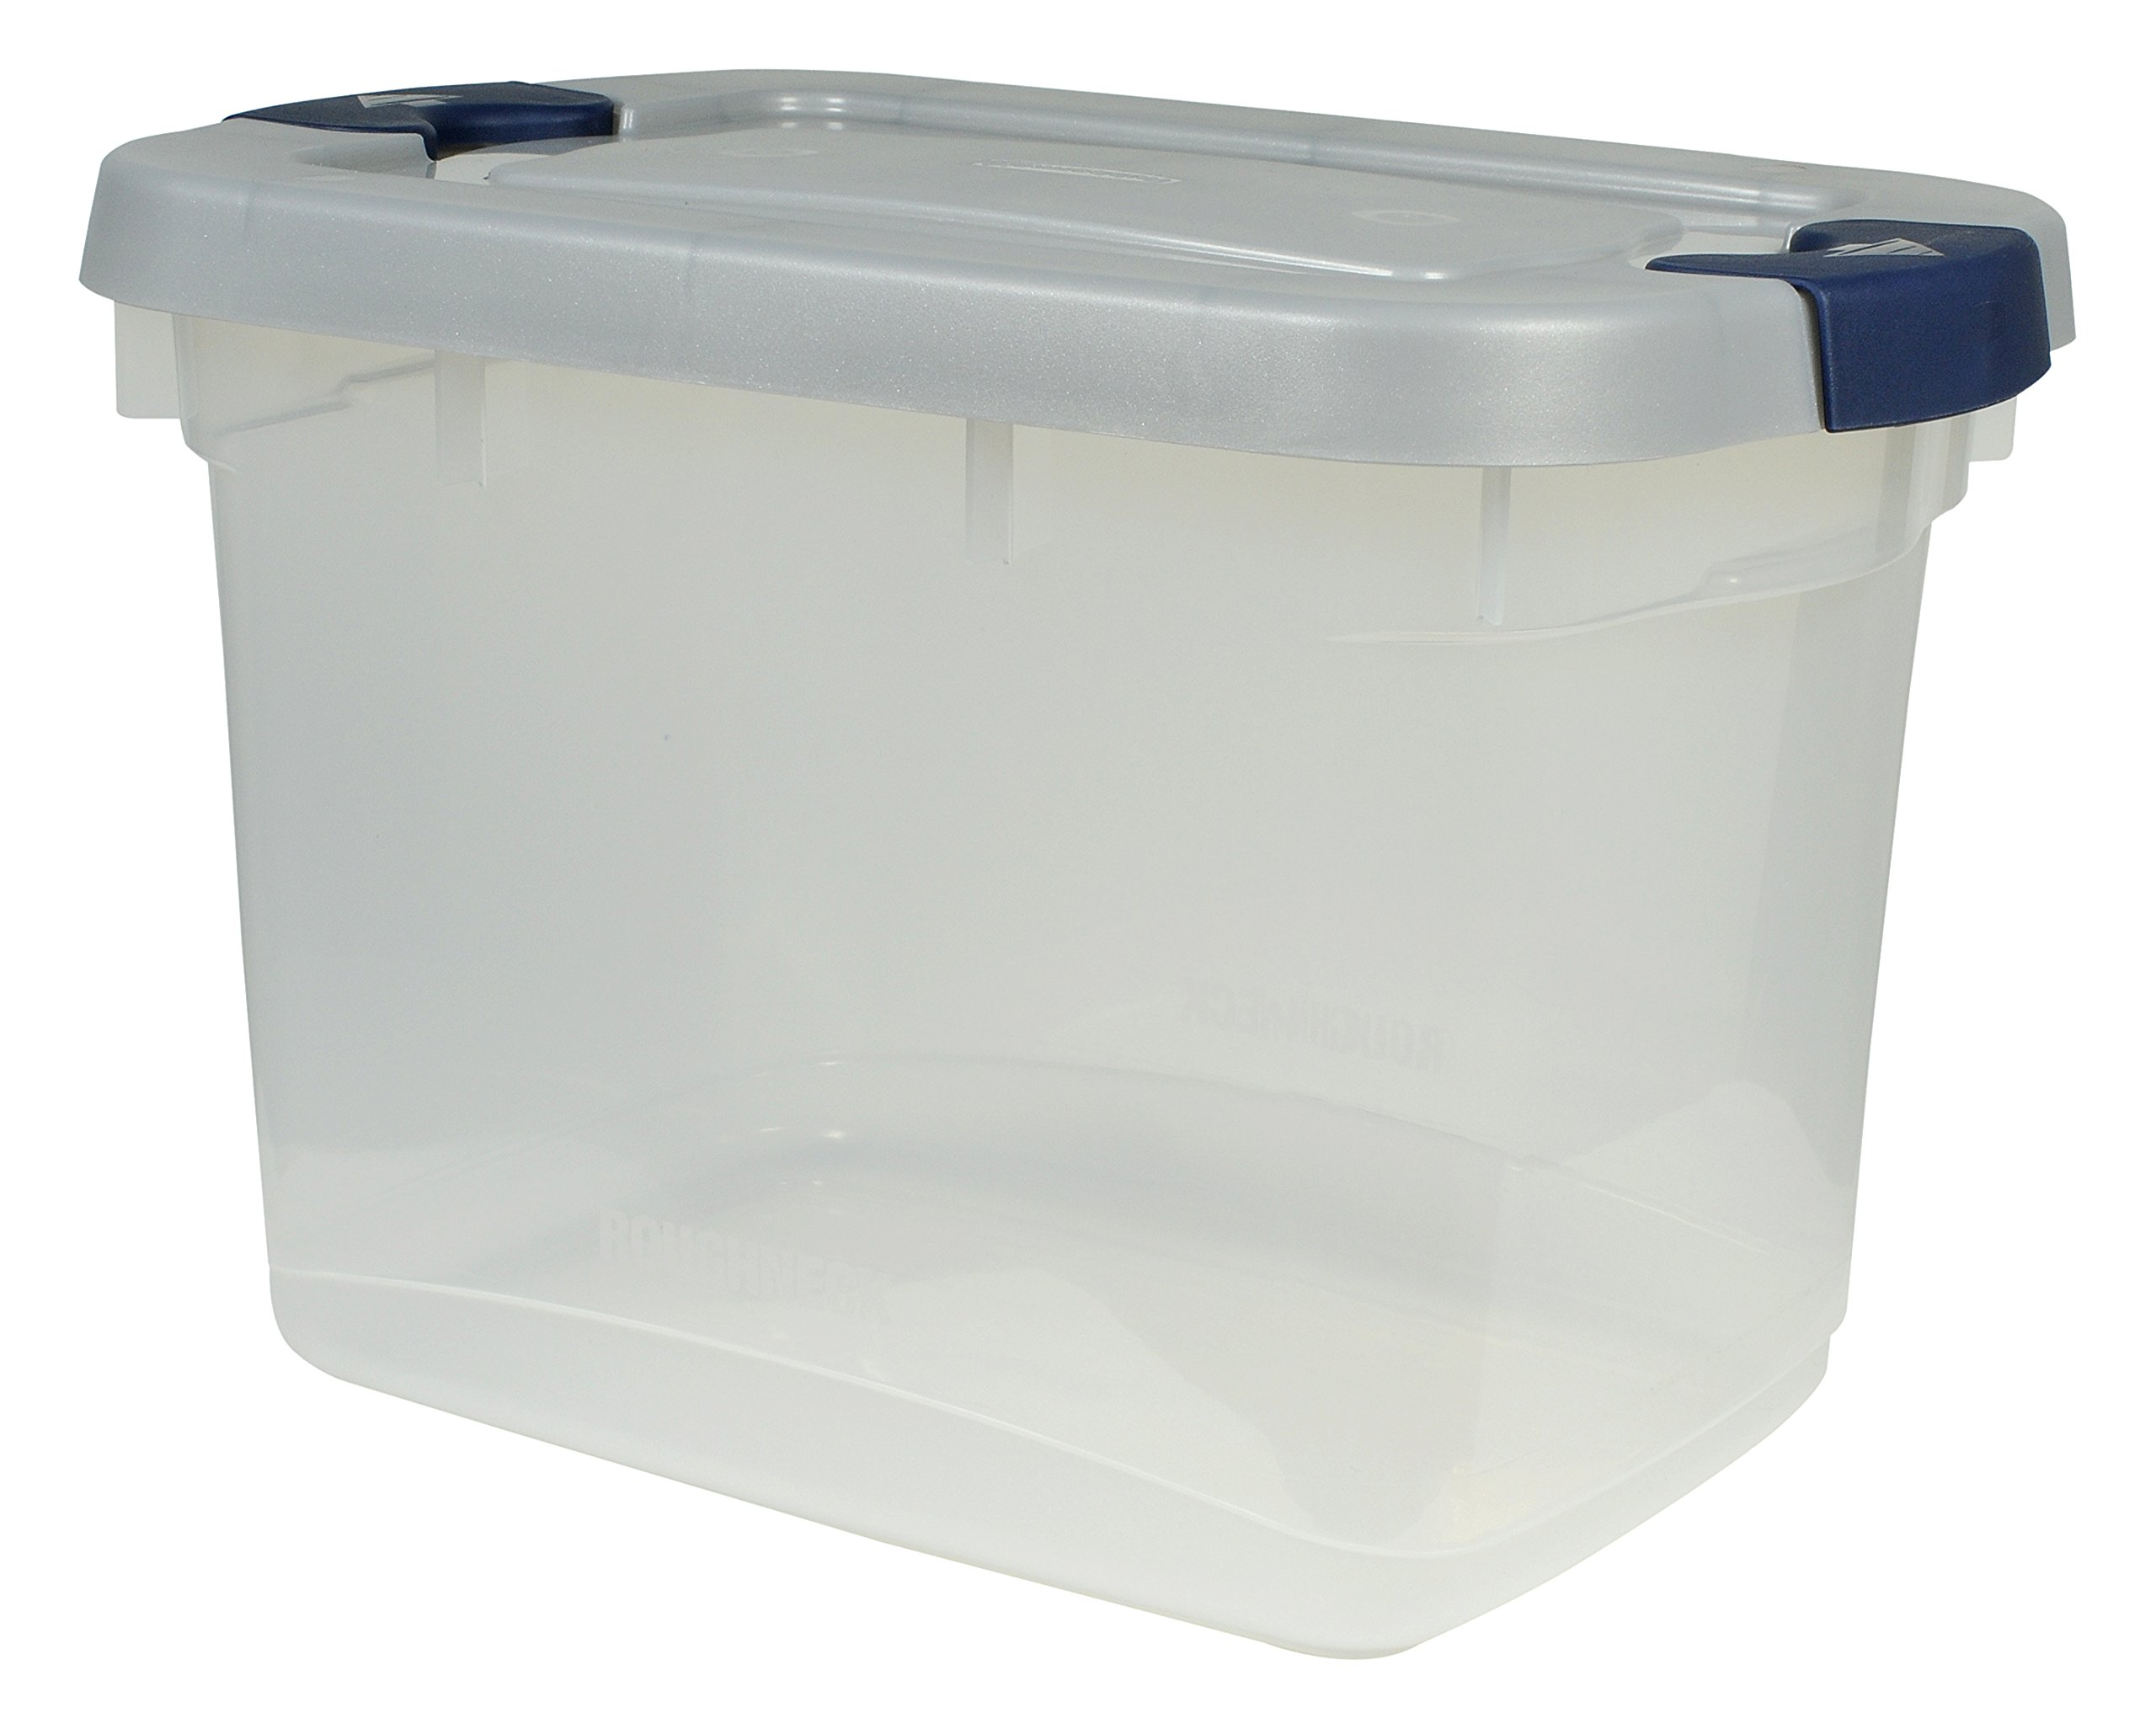 Rubbermaid 1785782 Roughneck Clear Tote, 19-Quart, 8 Pack